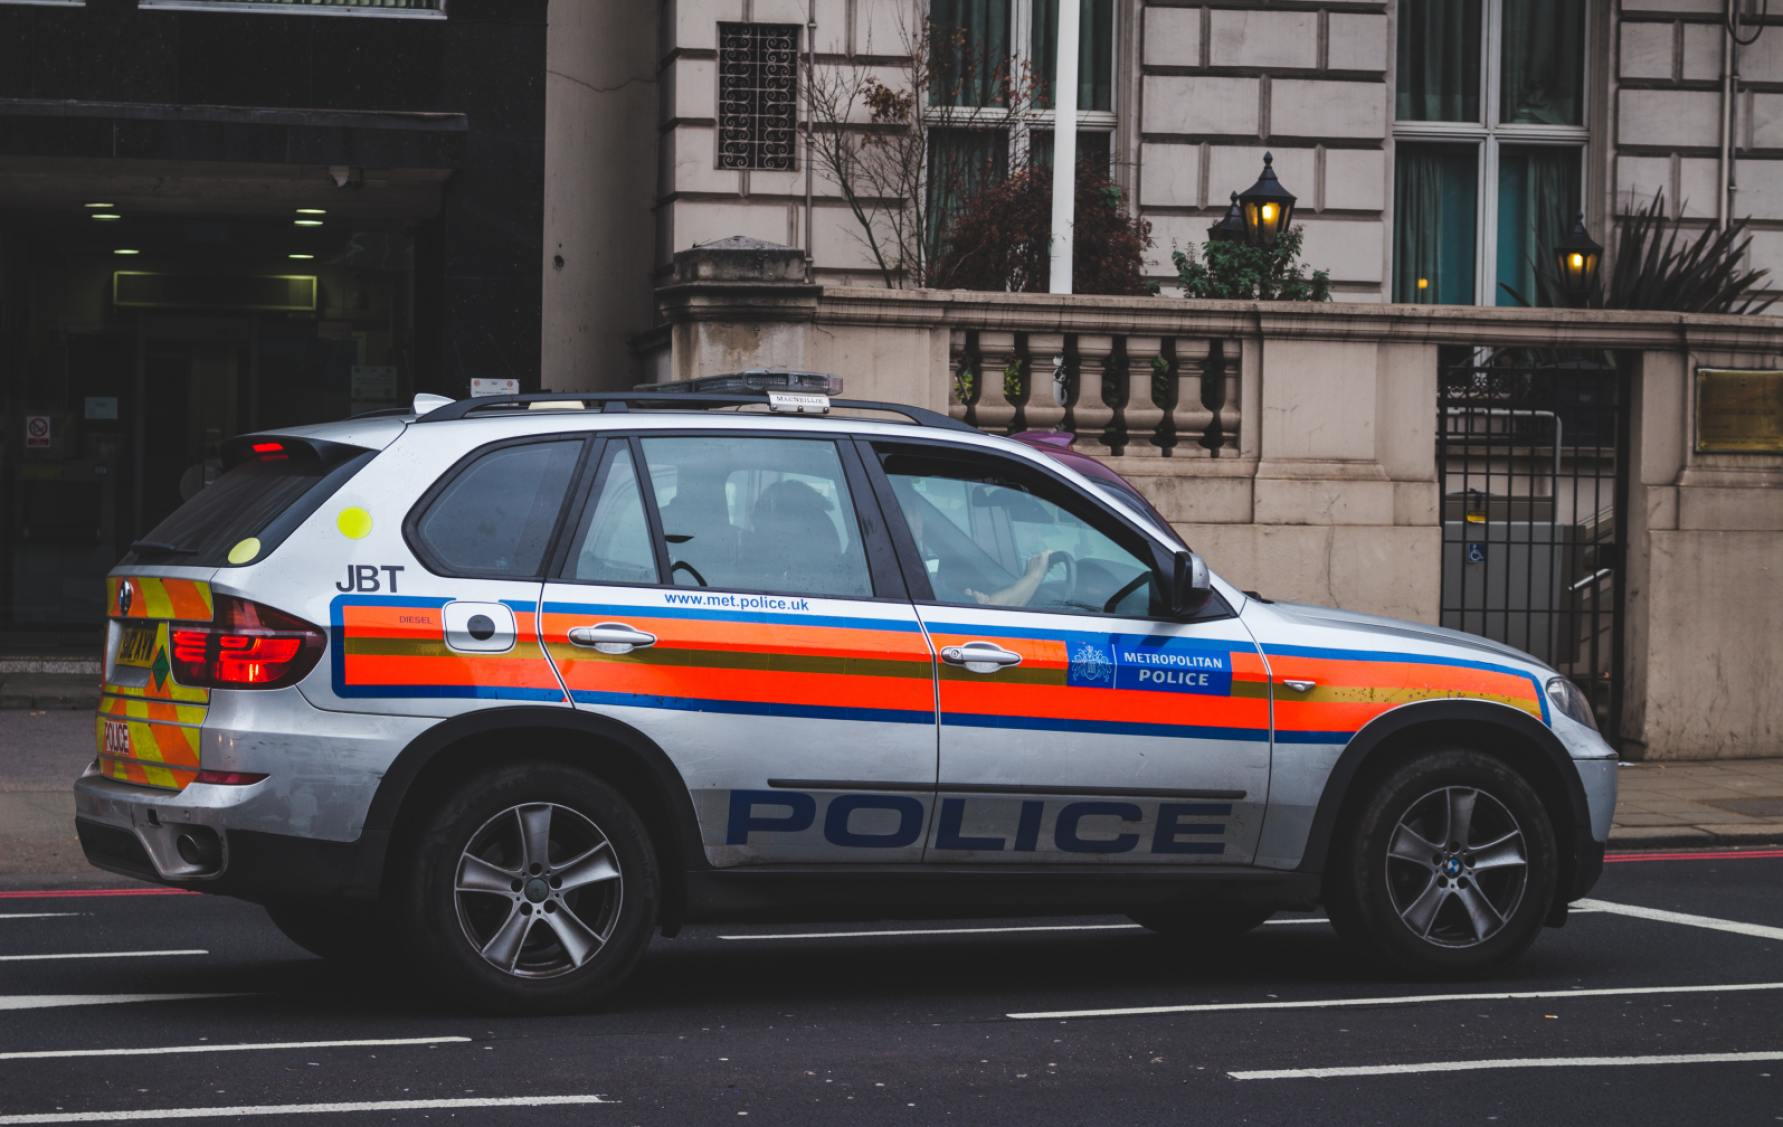 Police Car - Original image